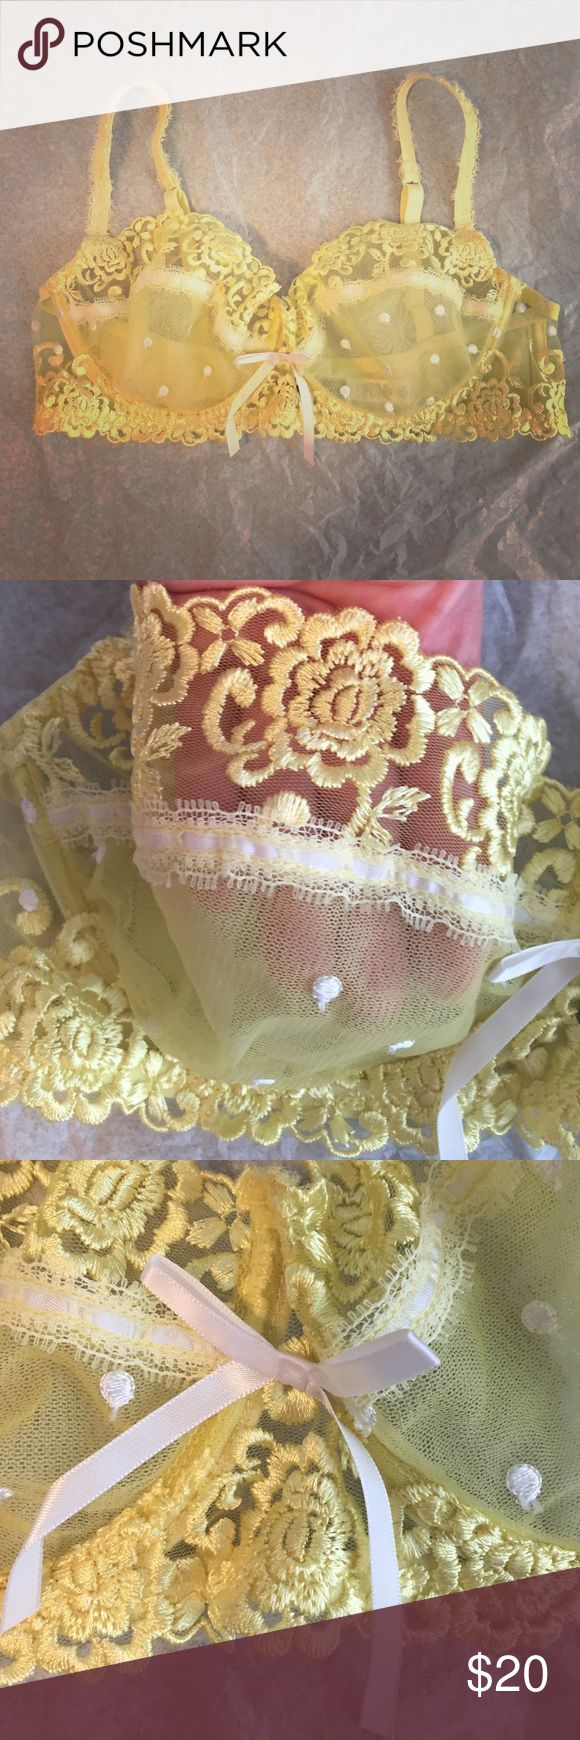 Sale Pretty yellow bra Unlined, underwire lace bra with adorable polka dots. Only worn once, as it's just not my proper size. Like new condition! Reasonable offers accepted. Would be great in a bundle! Intimates & Sleepwear Bras